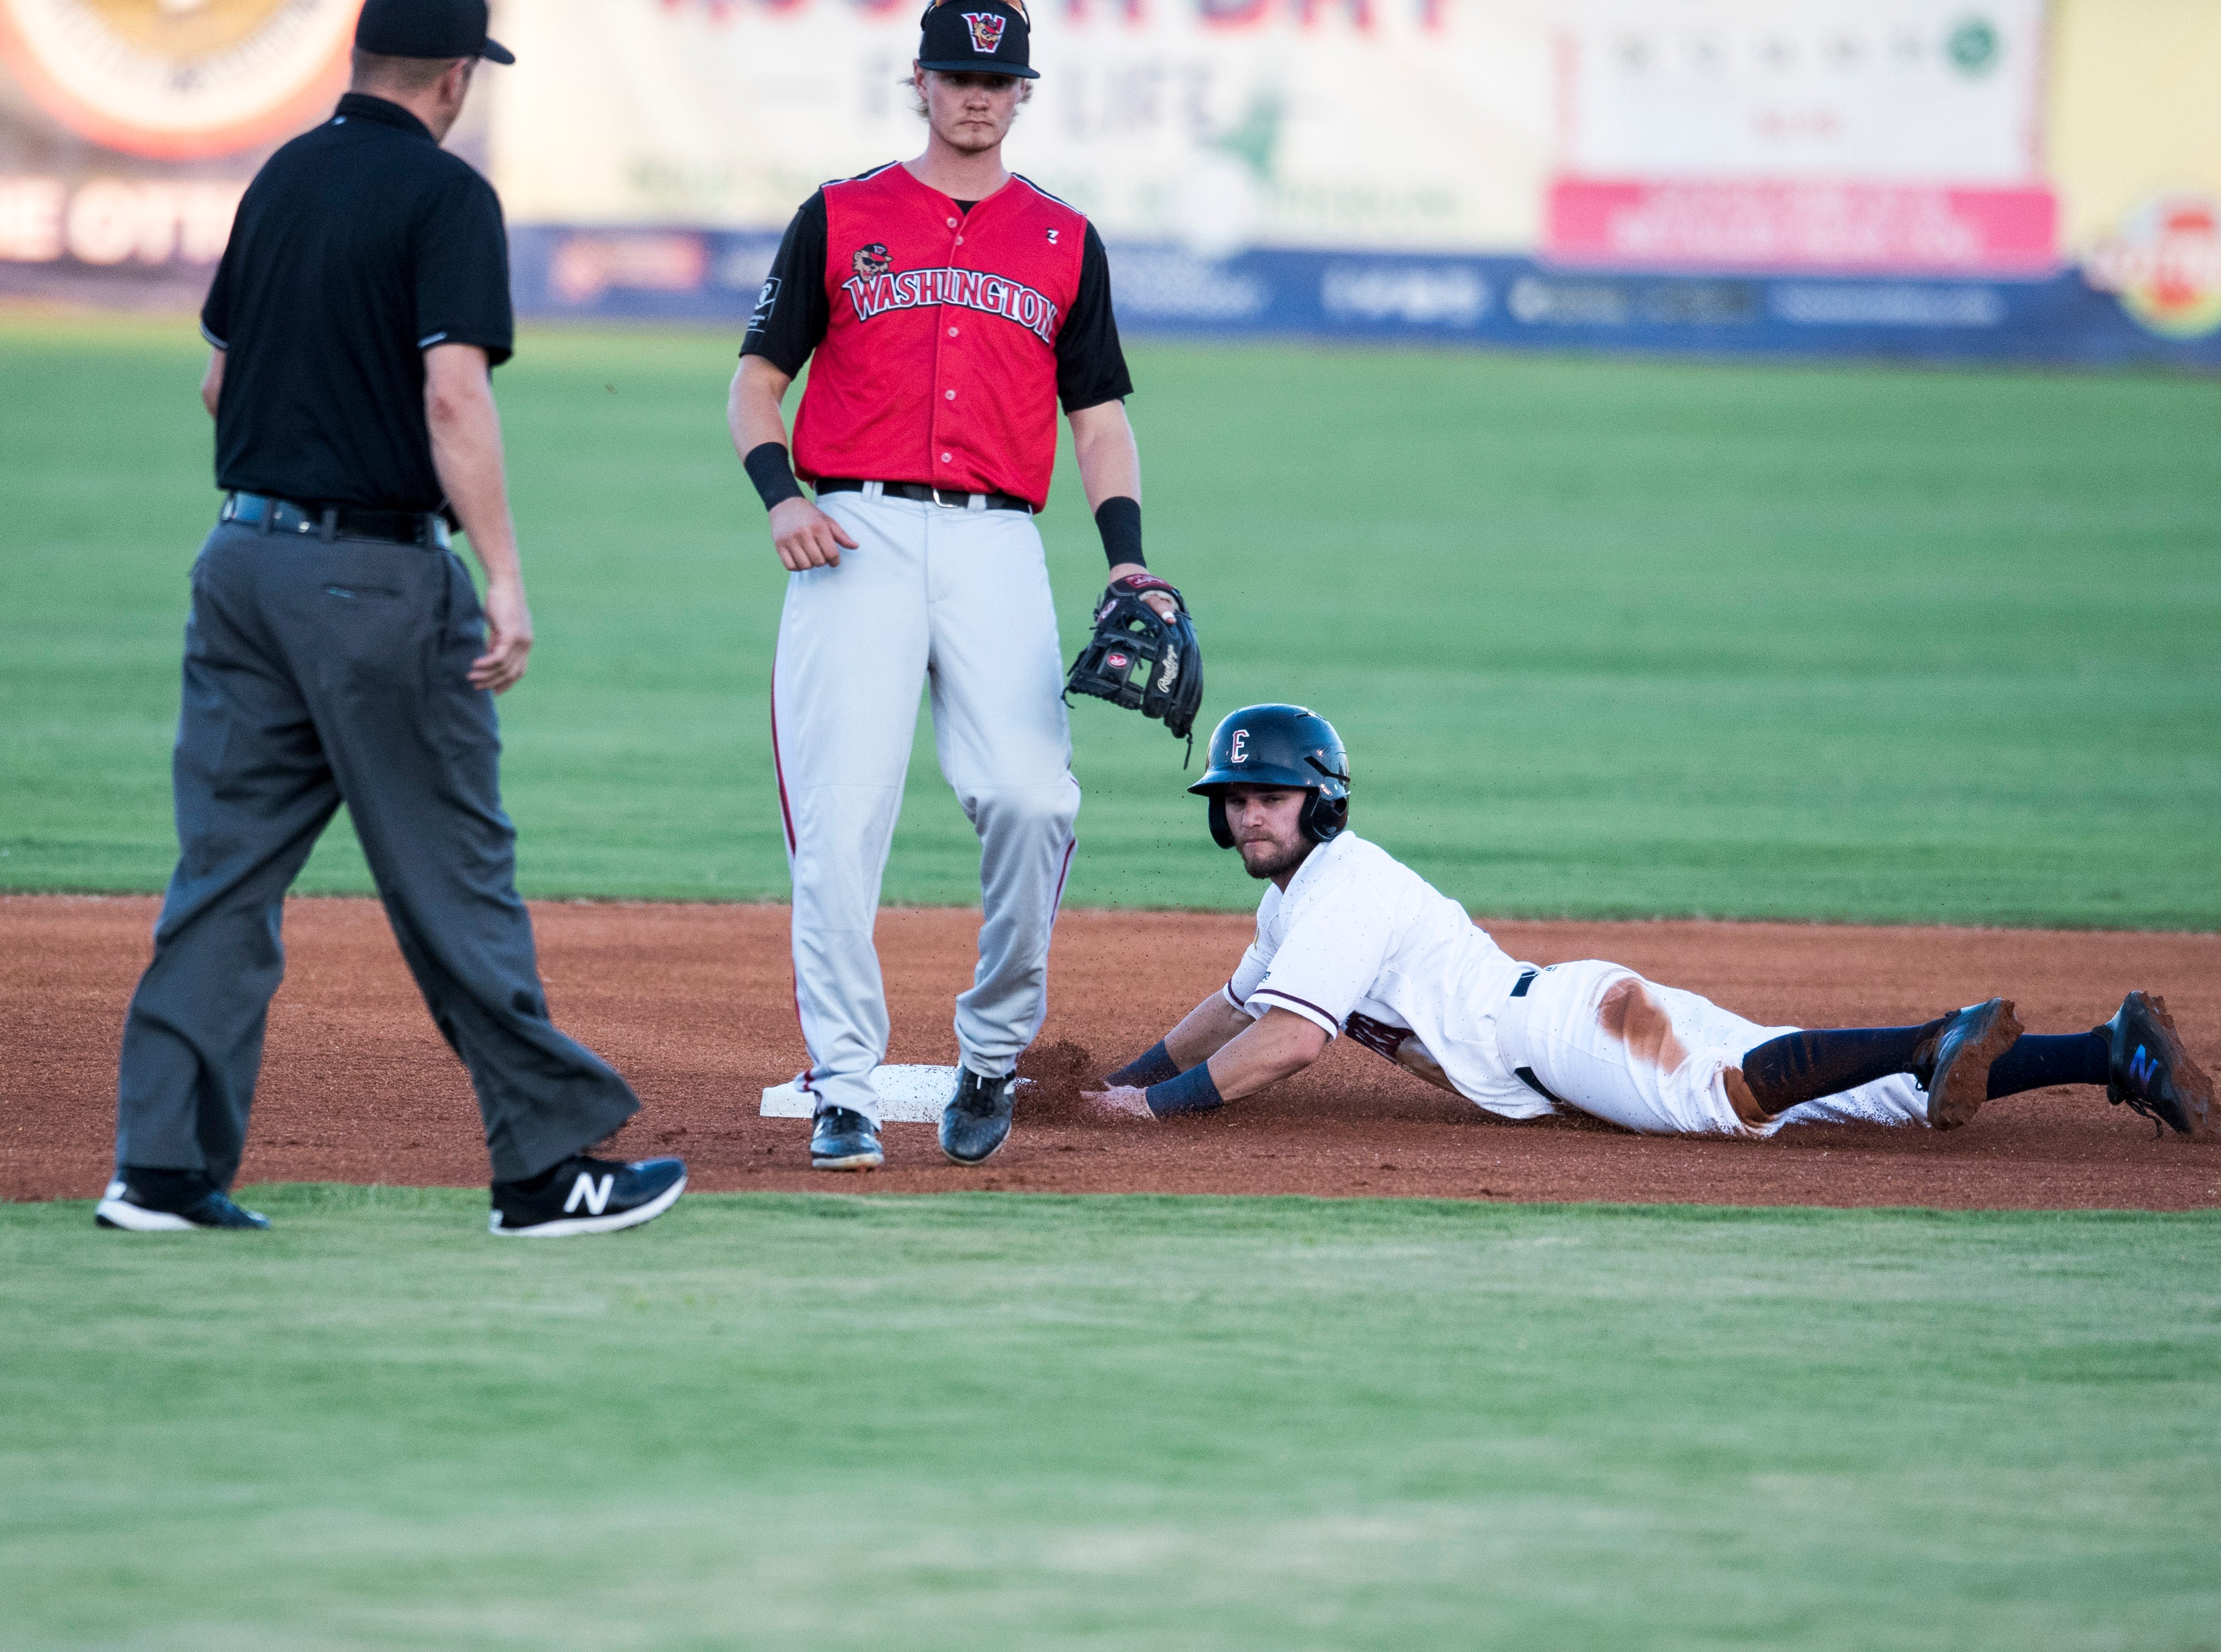 Evansville's David Cronin (6) steals second during game one of the Frontier League Division Series at Bosse Field against the Washington Wild Things Tuesday, September 4, 2018.